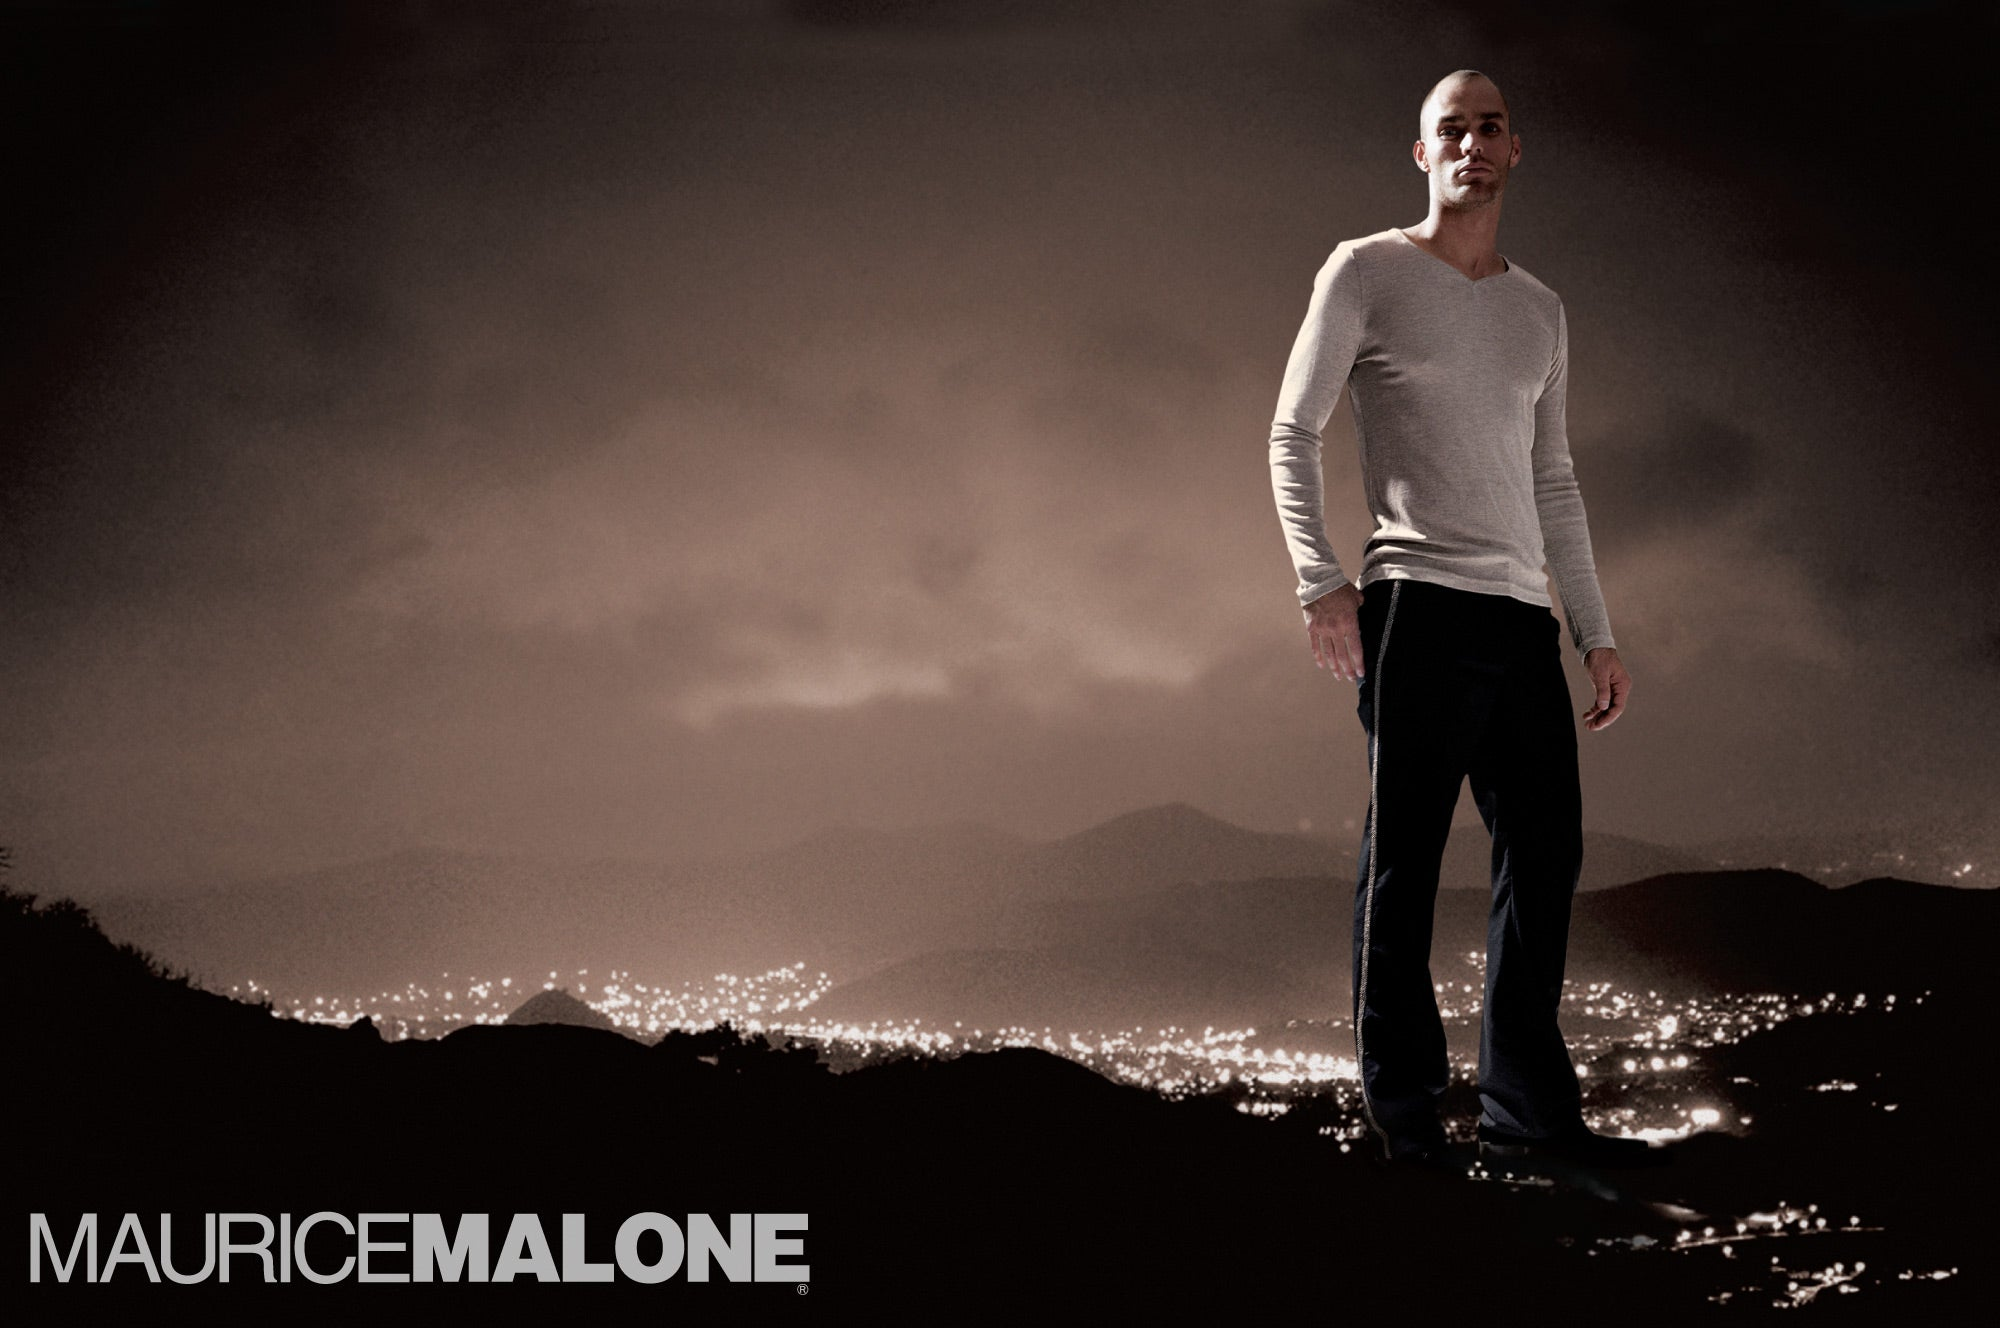 2004 Maurice Malone fashion advertisement shows a giant man standing over the hills in Los Angeles